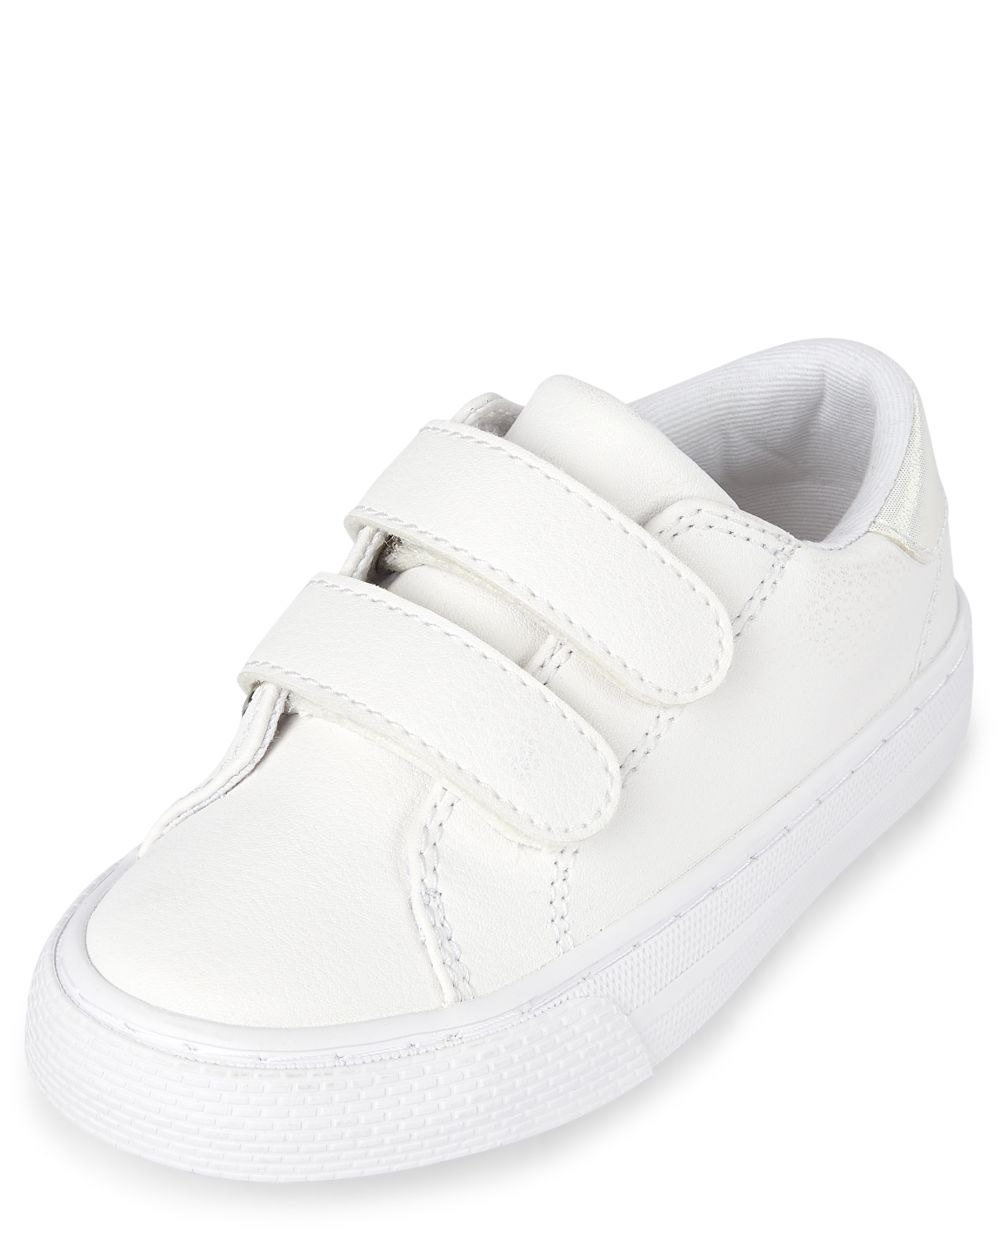 Toddler Girls Uniform Sneakers